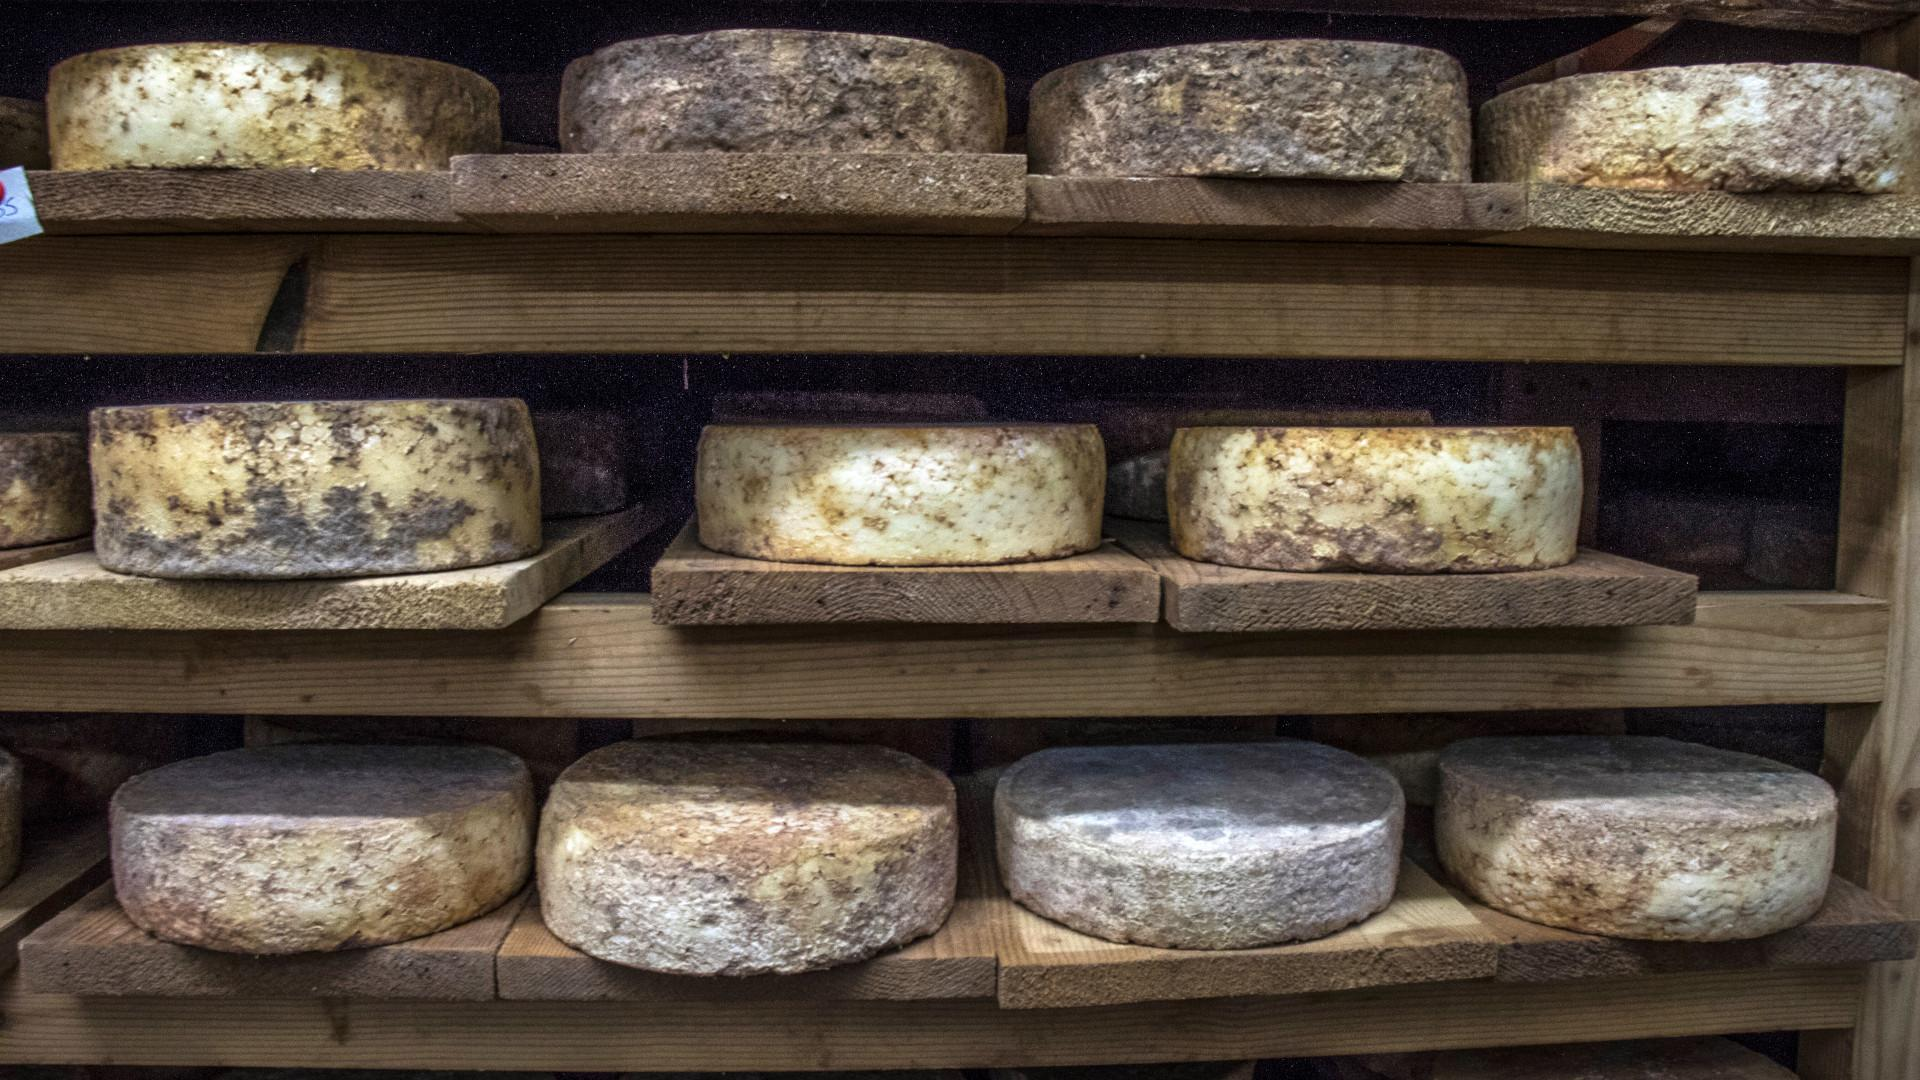 fromages-alpes-adet05-patdomeyne-2-1.jpg